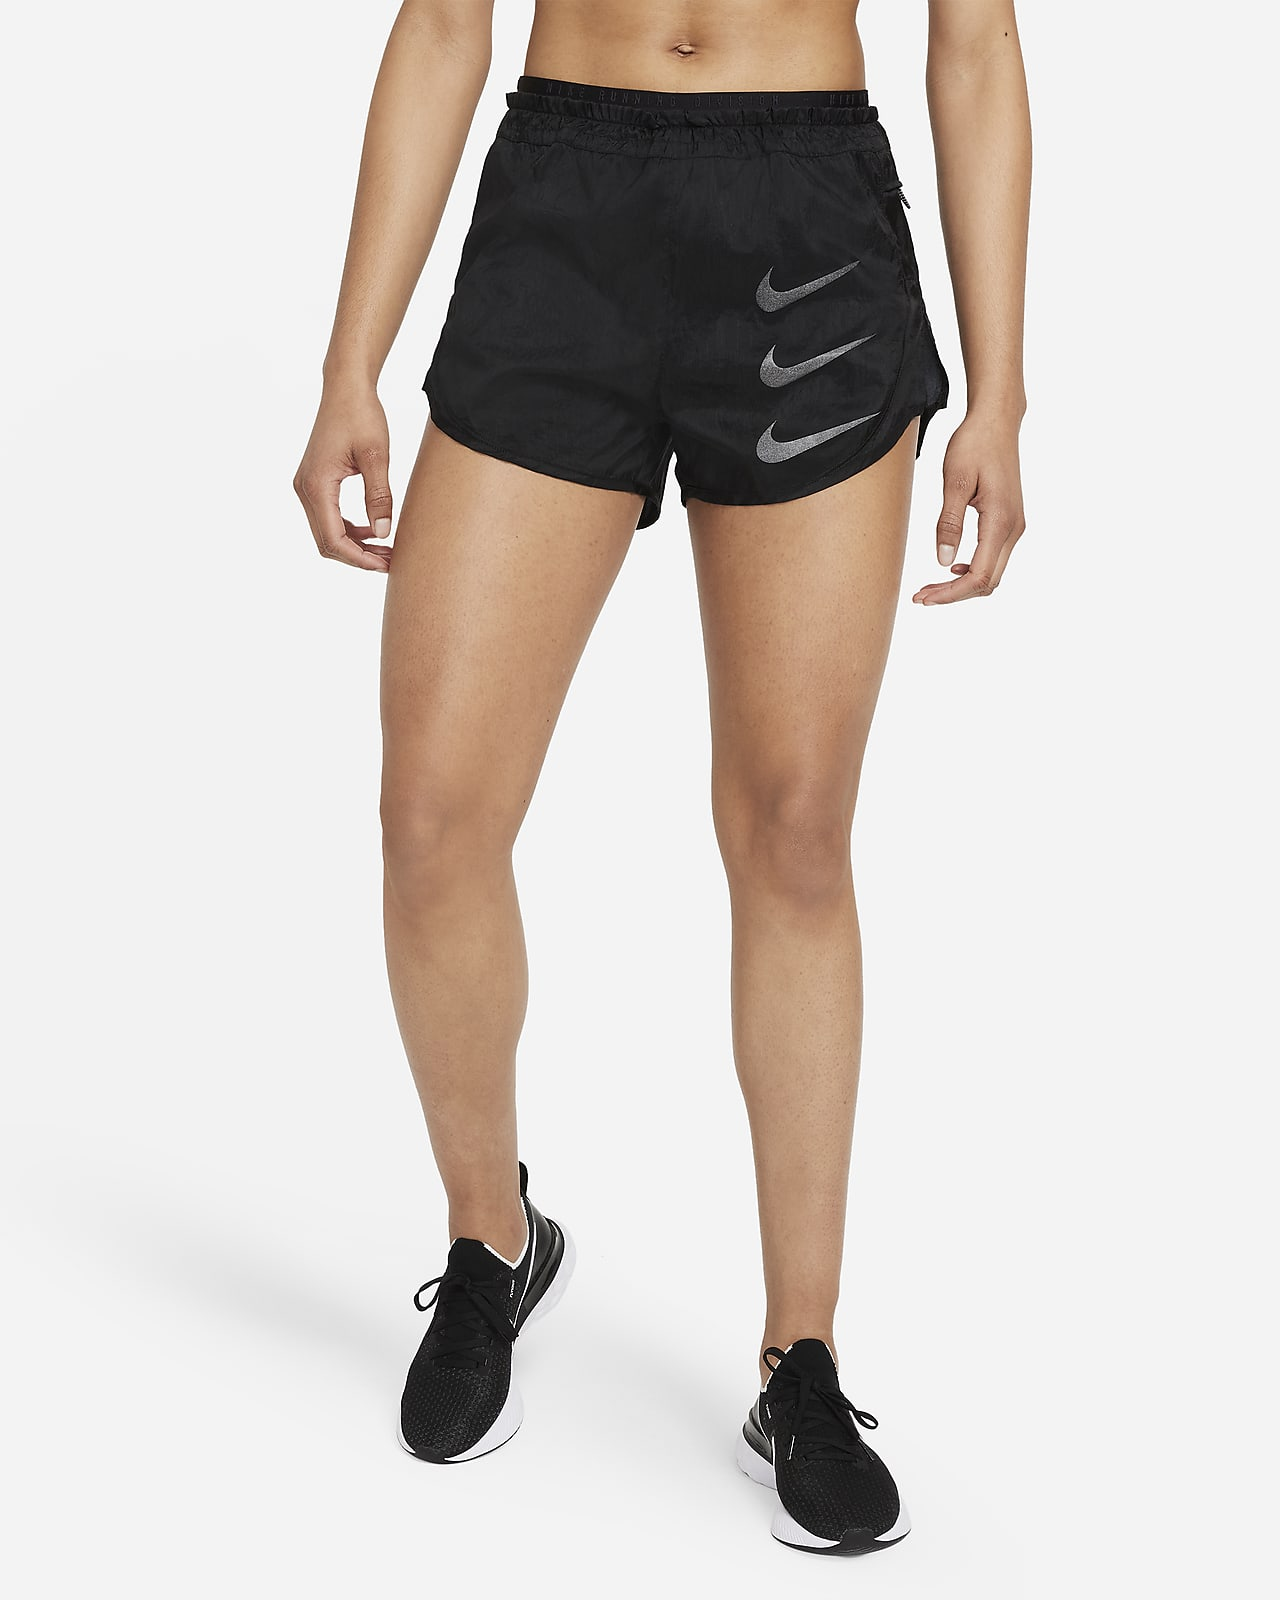 Nike Tempo Luxe Run Division Women's 2-in-1 Running Shorts